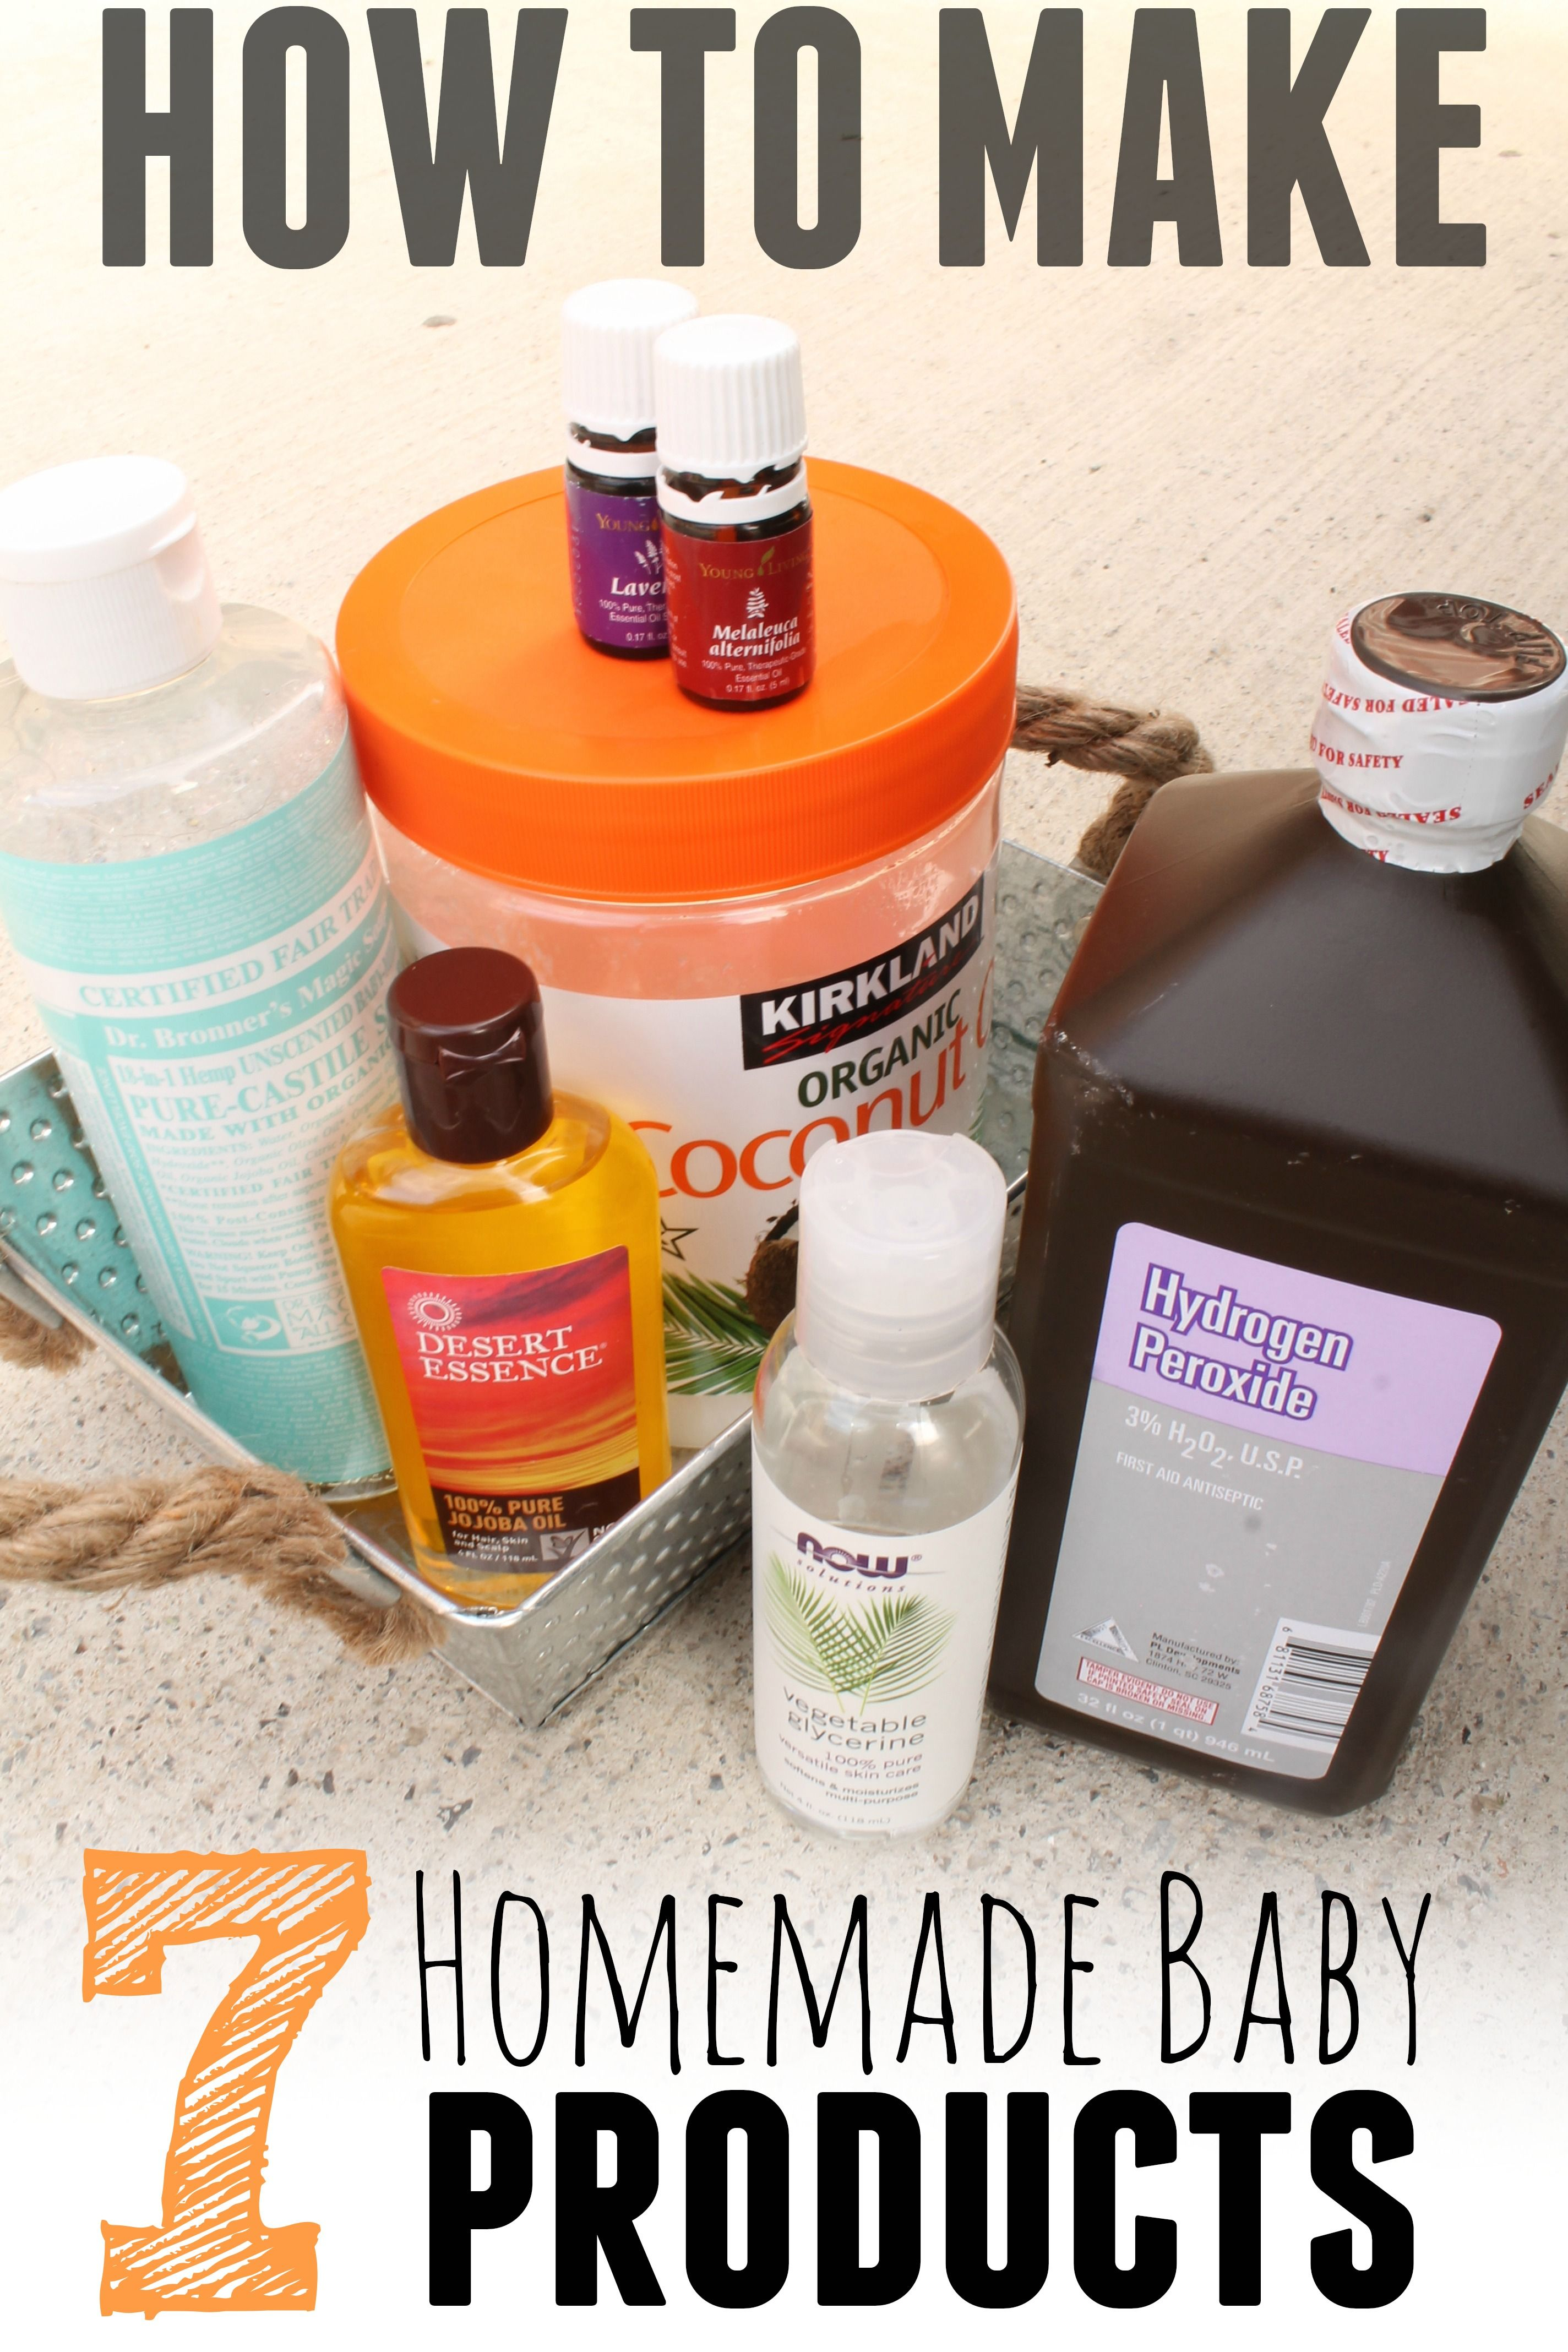 Homemade Baby Products 7 of them using only 7 total